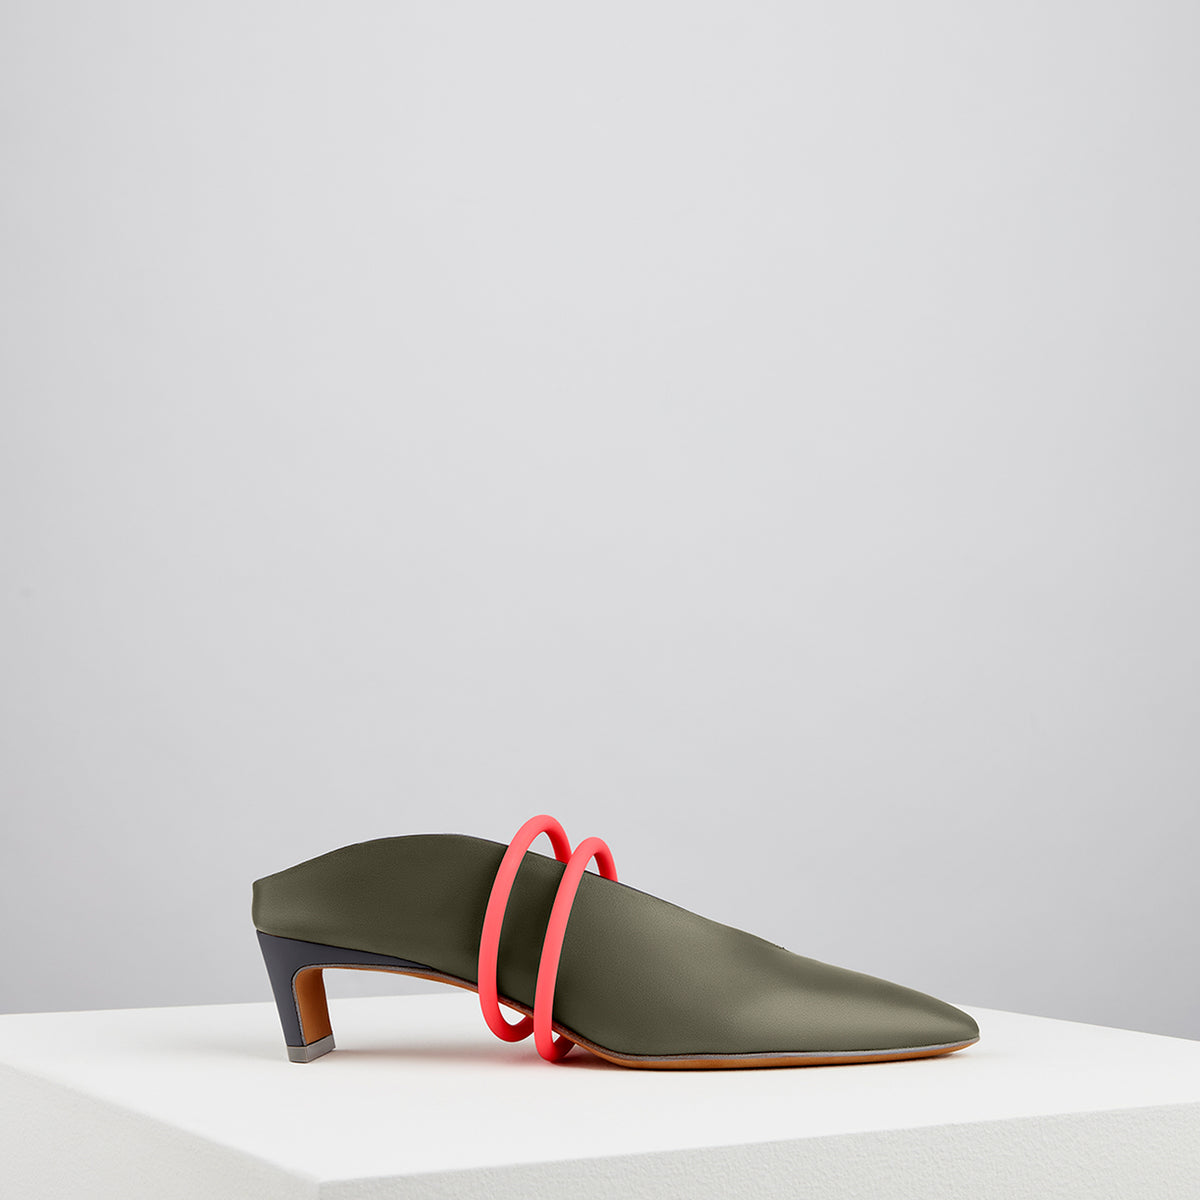 Load image into Gallery viewer, Piega Neon Mules Verde Oliva